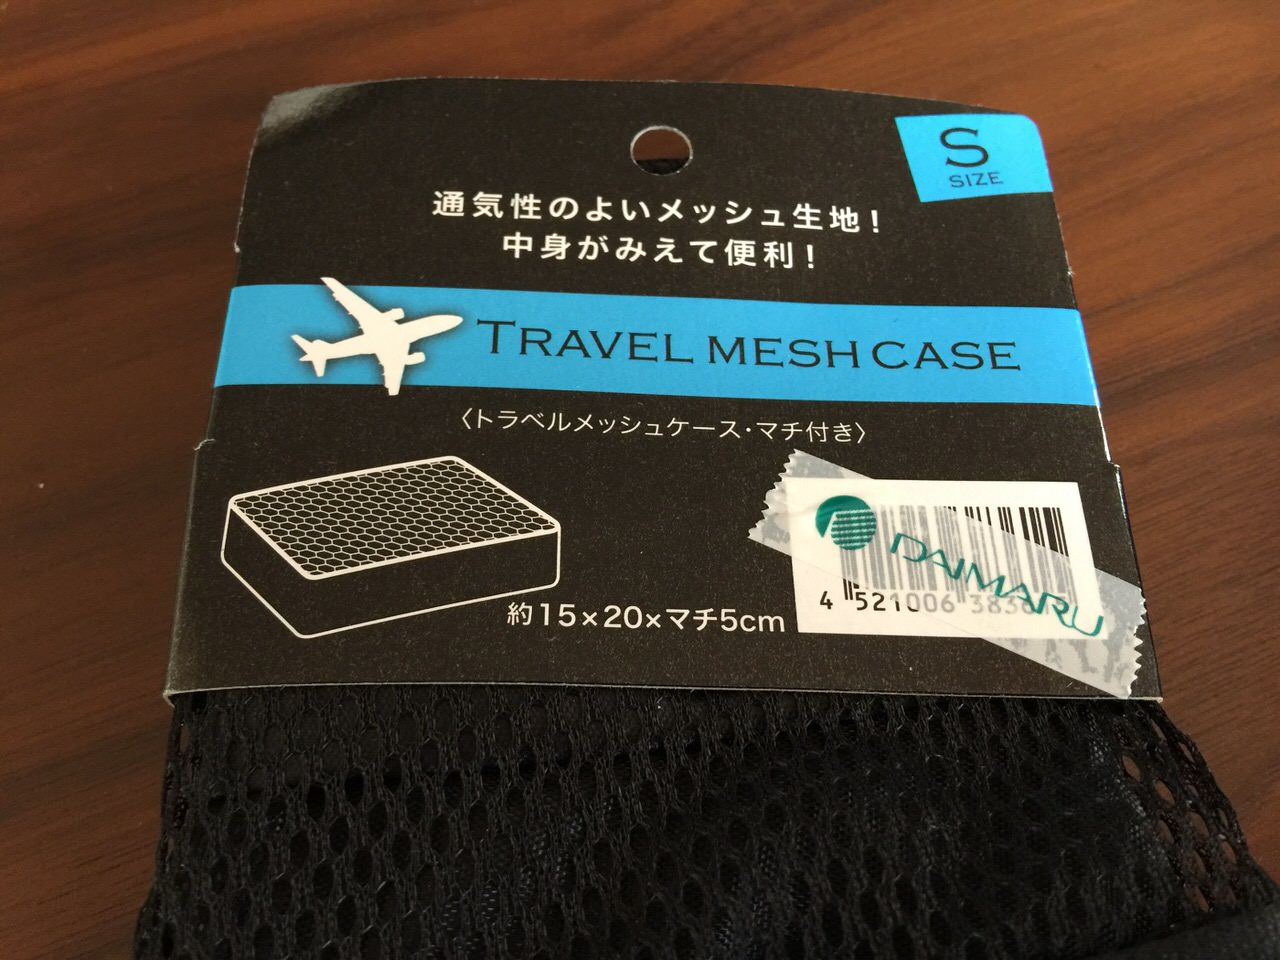 Travel mesh case 7289